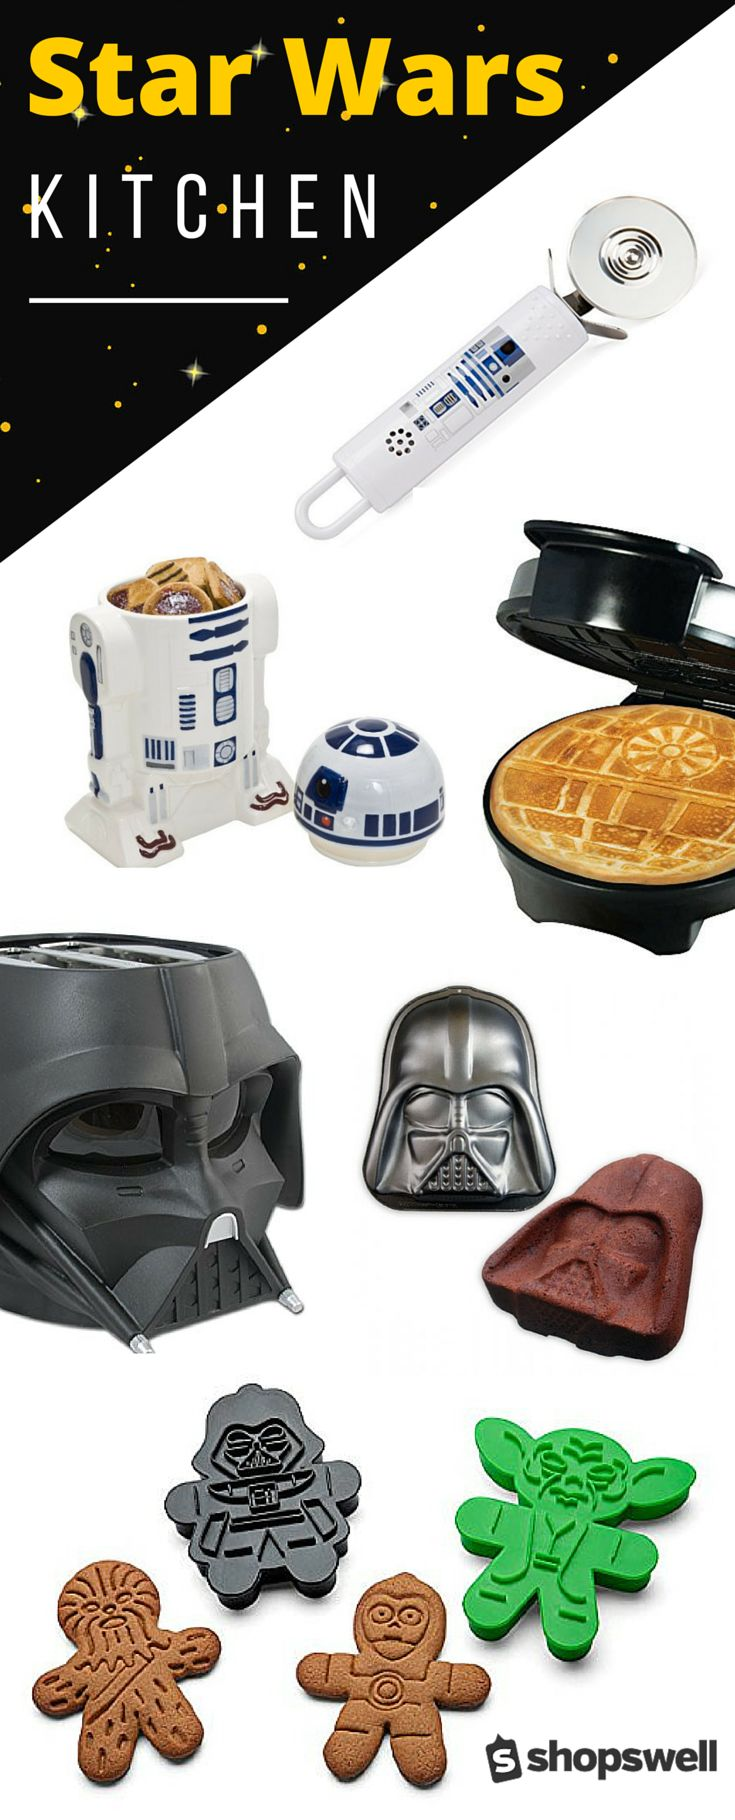 Essential kitchen products for the Star Wars fanatic.